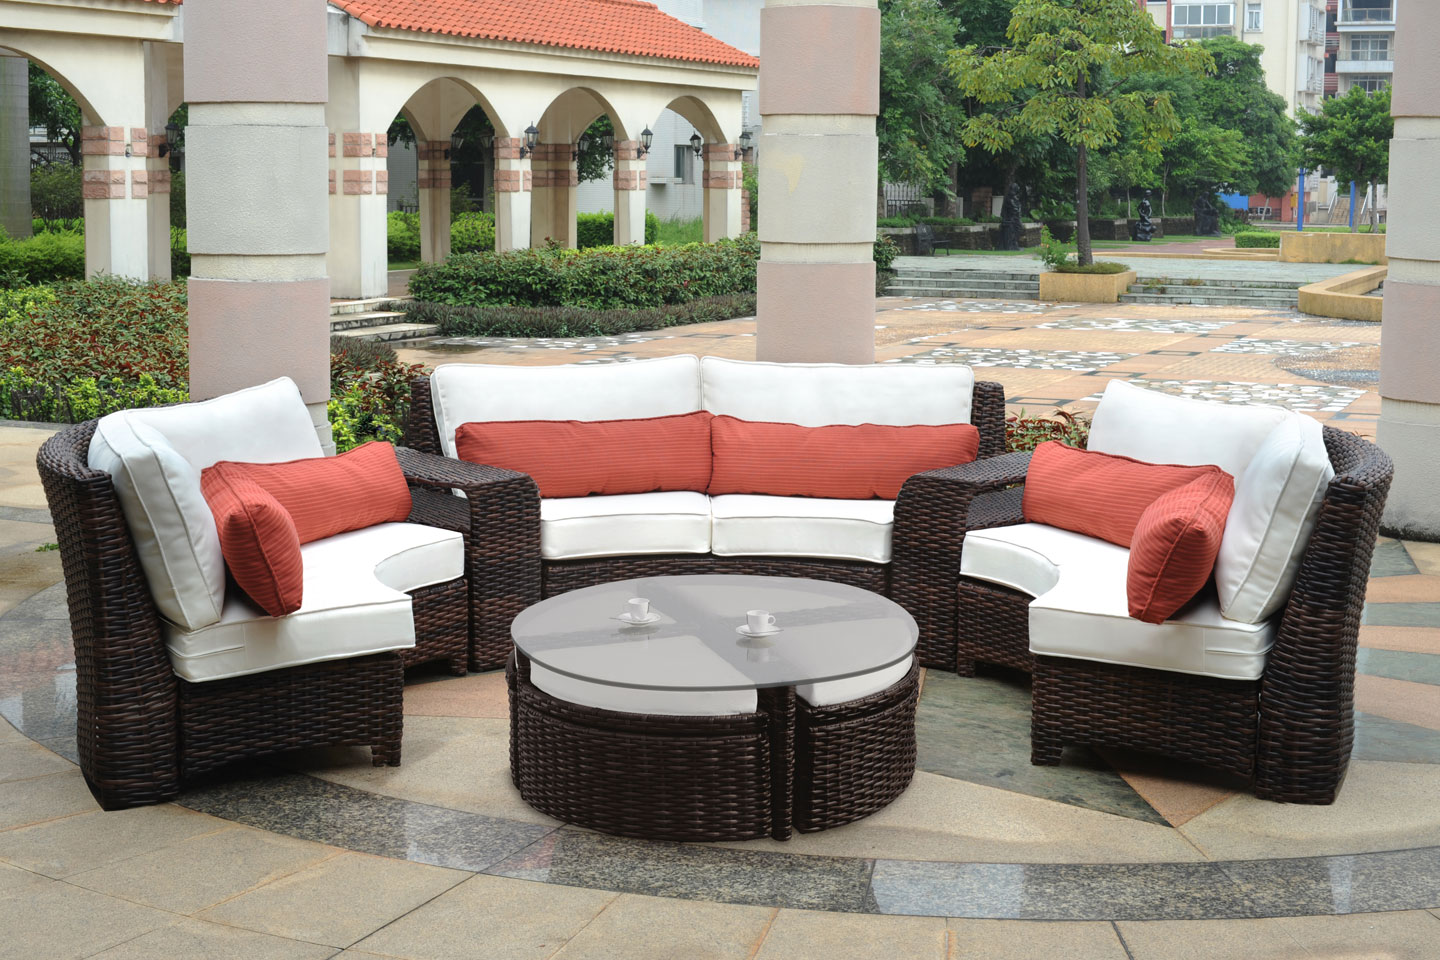 Patio Backyard Furniture :  Outdoor Patio Seating > Fiji Curved Outdoor Resin Wicker Round Patio